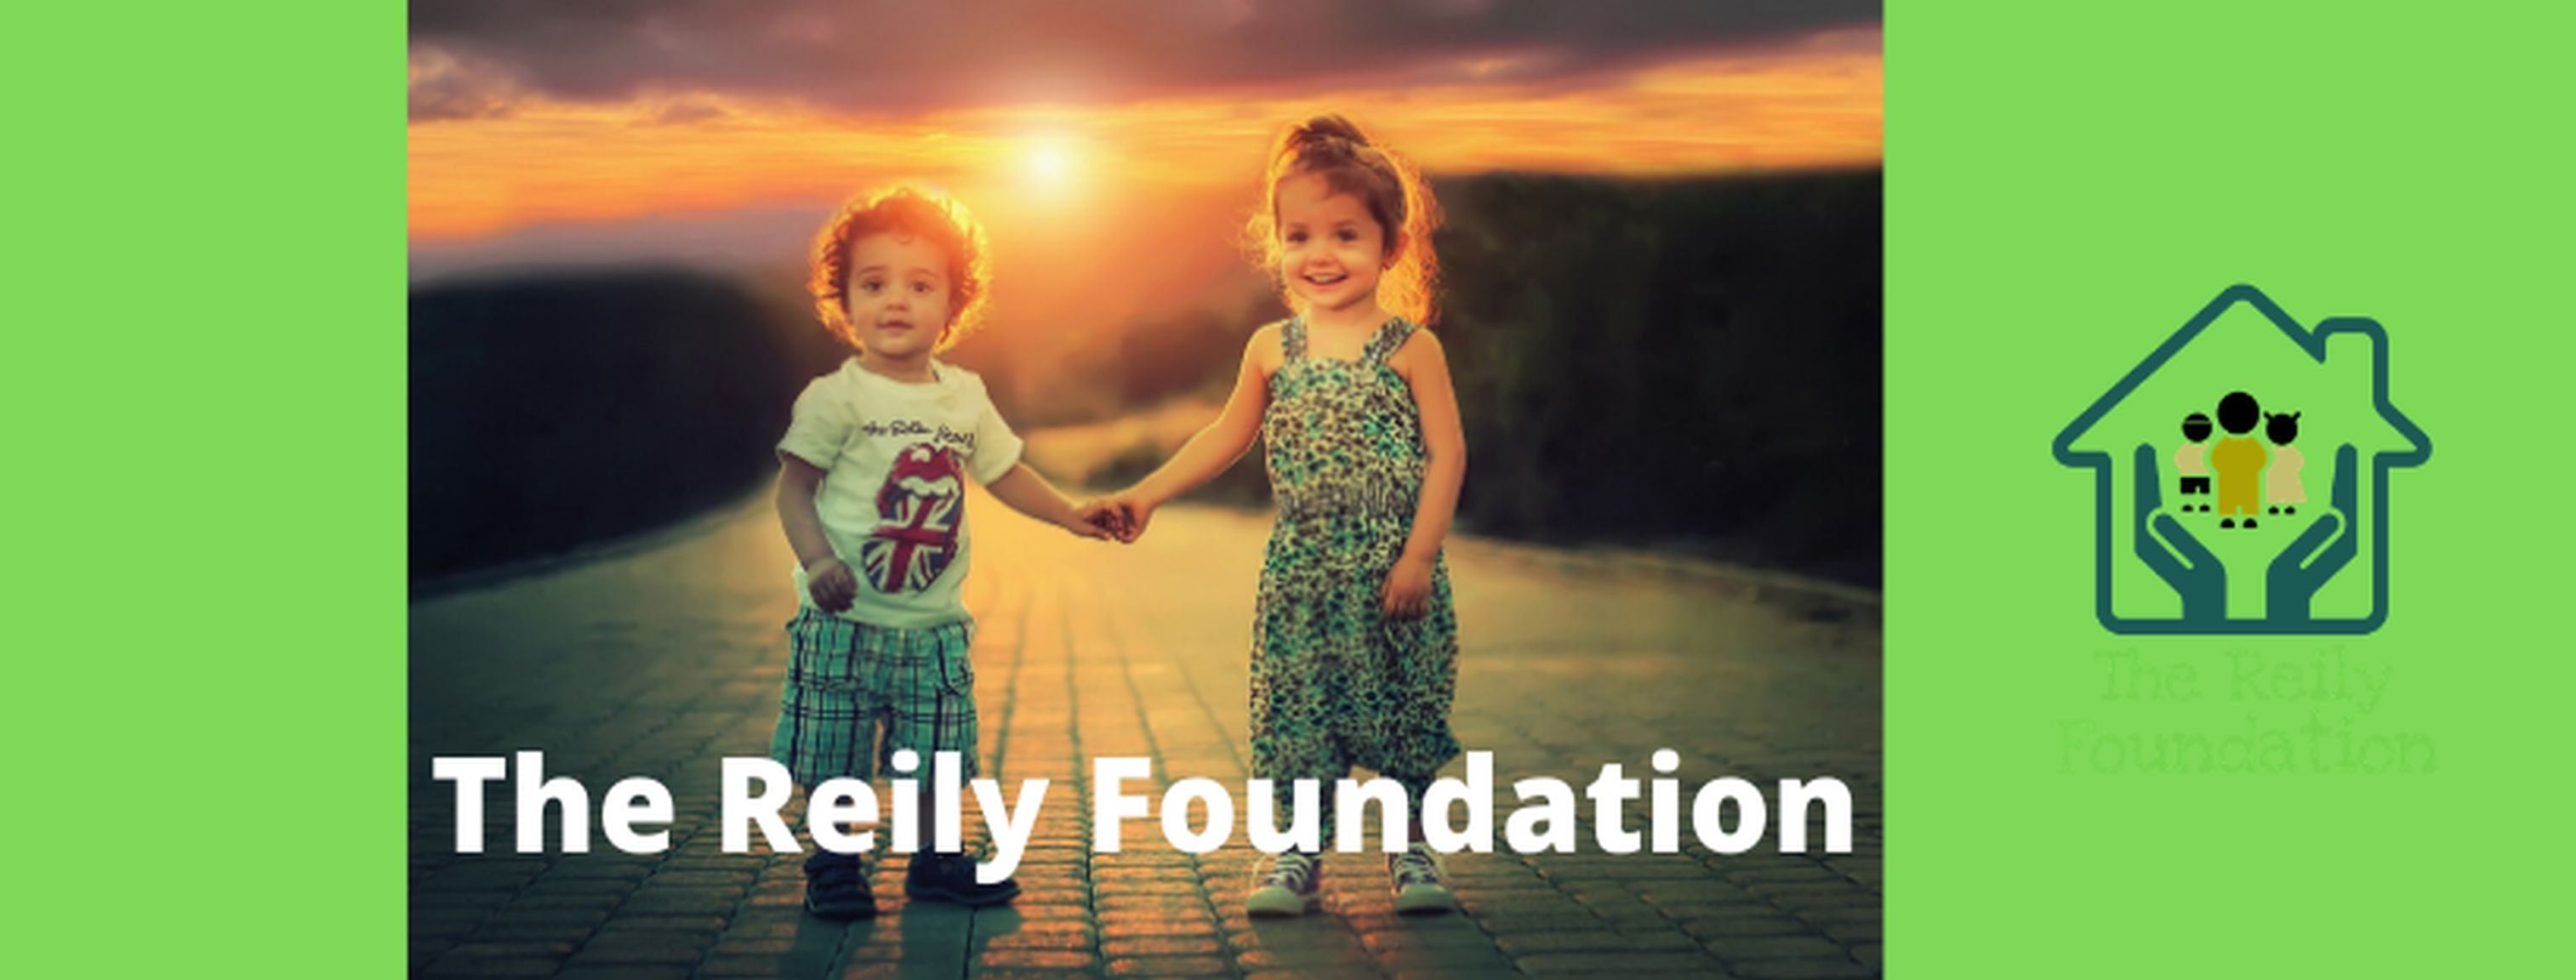 The Reily Foundation - What we do